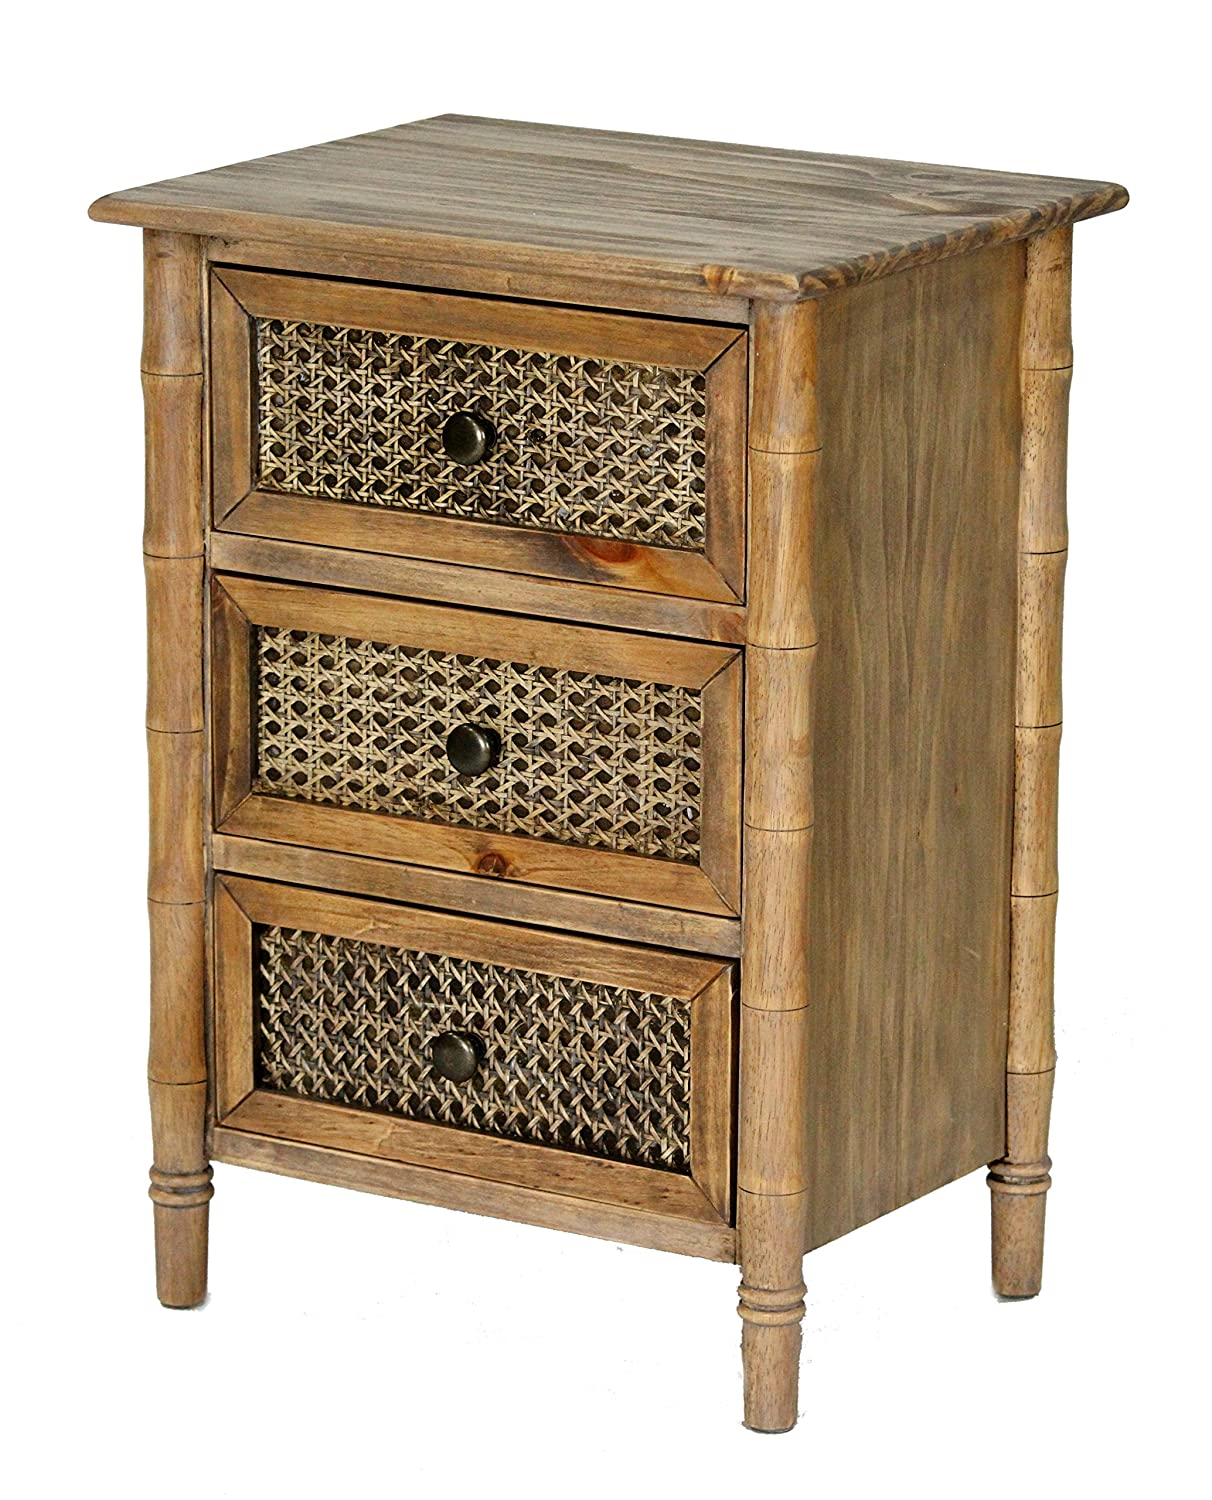 Heather Ann Creations Wallace Collection Living Room Bamboo Style 3 Drawer Free Standing Chest - Rustic Farmhouse